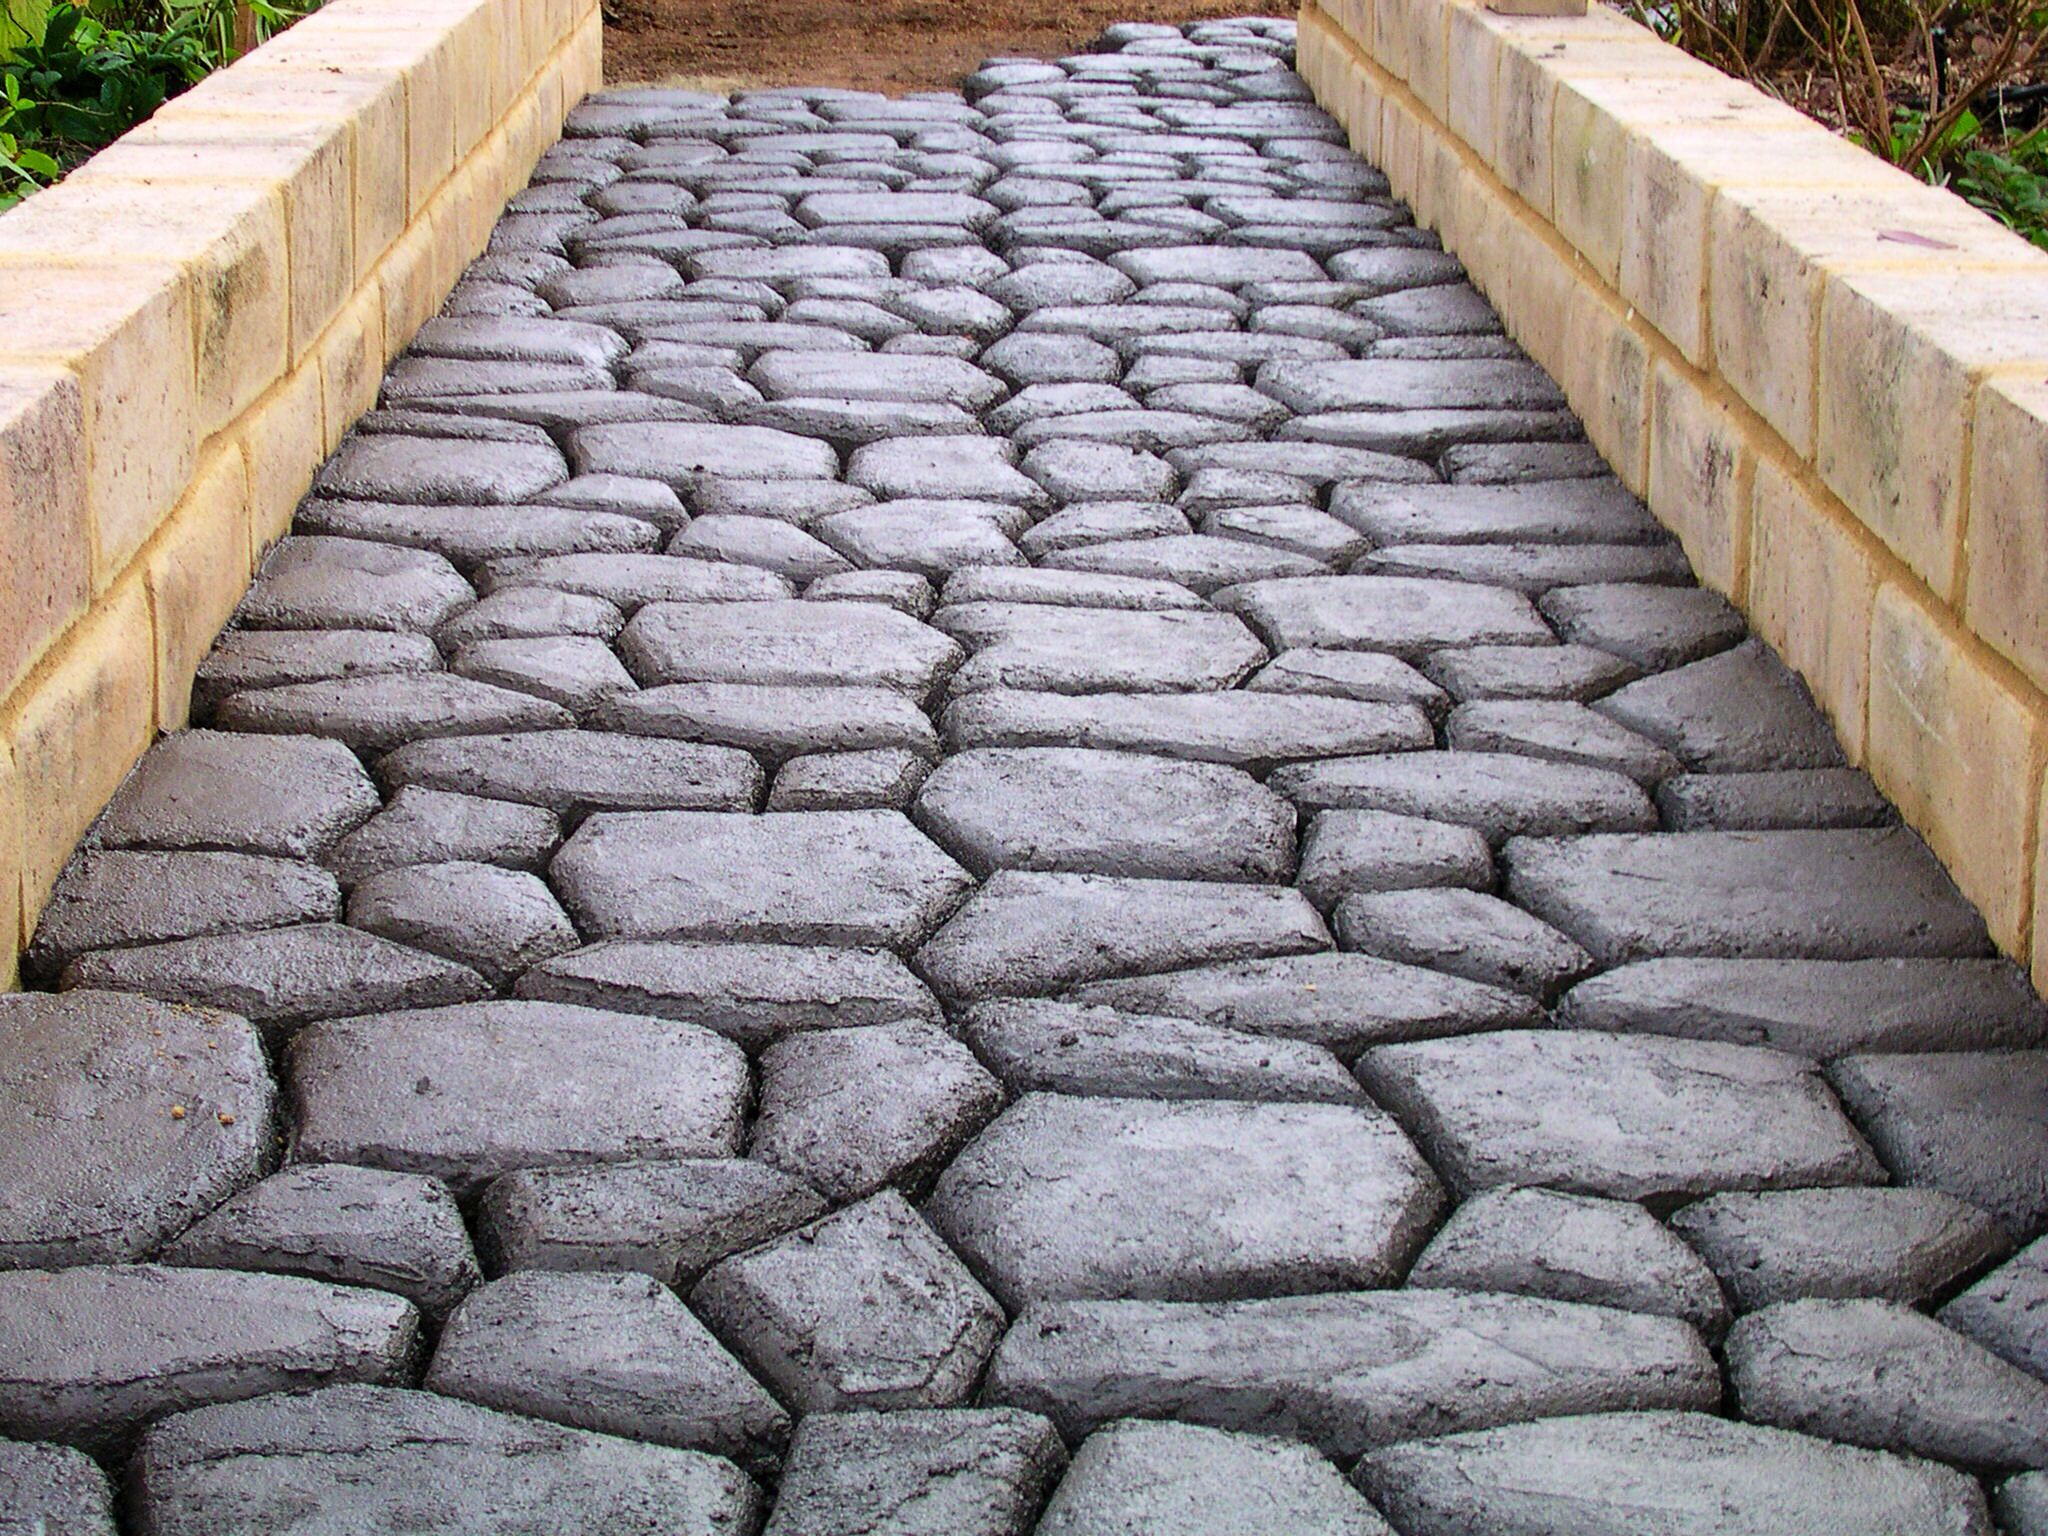 Cobblestone Diy Paving Using One Pavermaker Mould (paving. Outdoor Furniture Sale Gumtree. Plastic Table For Patio. Ideas For Patio Enclosures. Cheap Outdoor Plastic Chairs. Fry's Marketplace Patio Furniture Set. Deck Patio Pavers. Nassau Patio Furniture Set. Cadac Patio Living Price